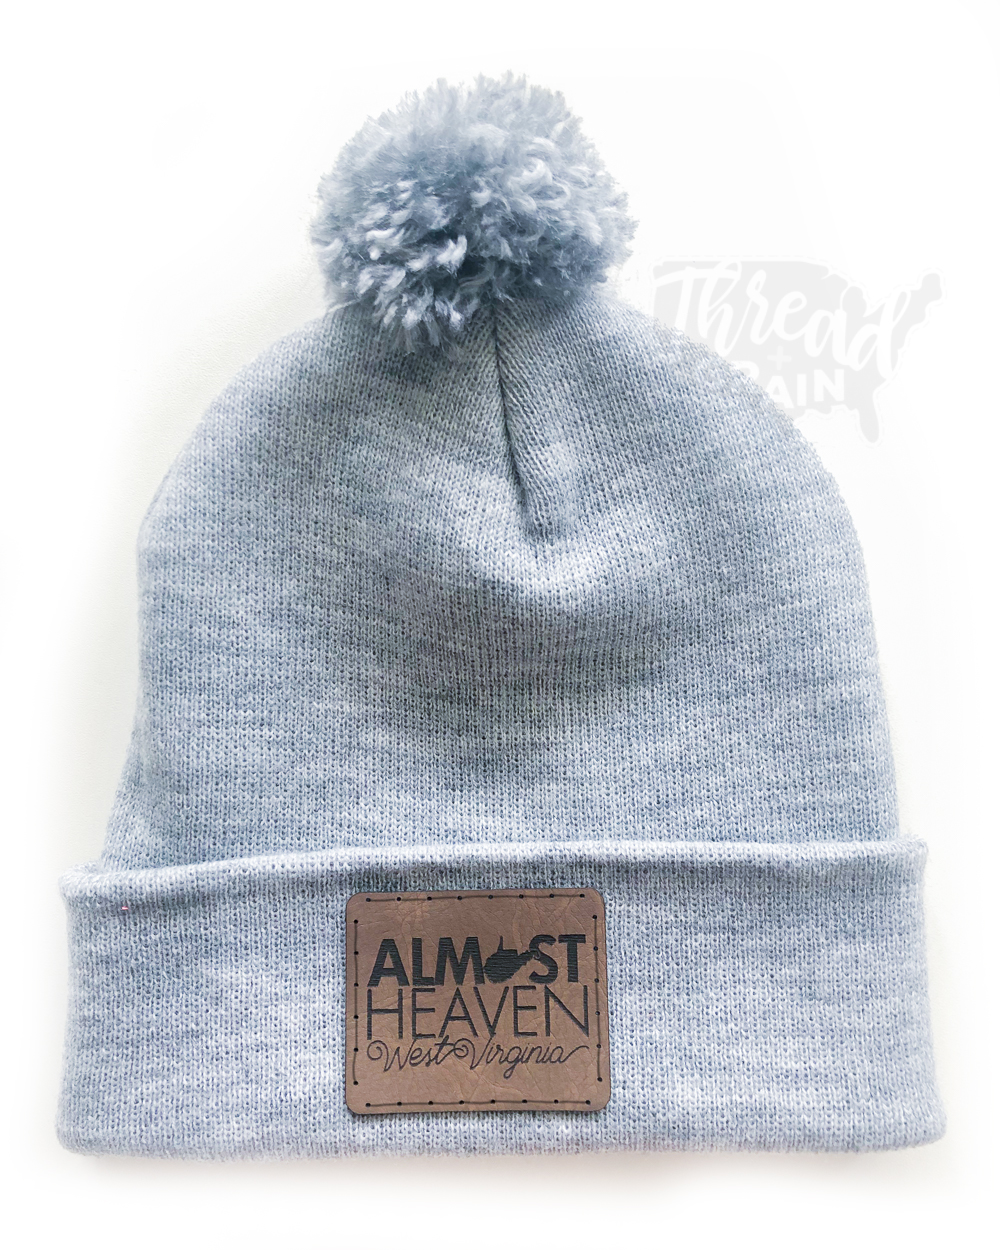 West Virginia :: Almost Heaven PATCHED HAT